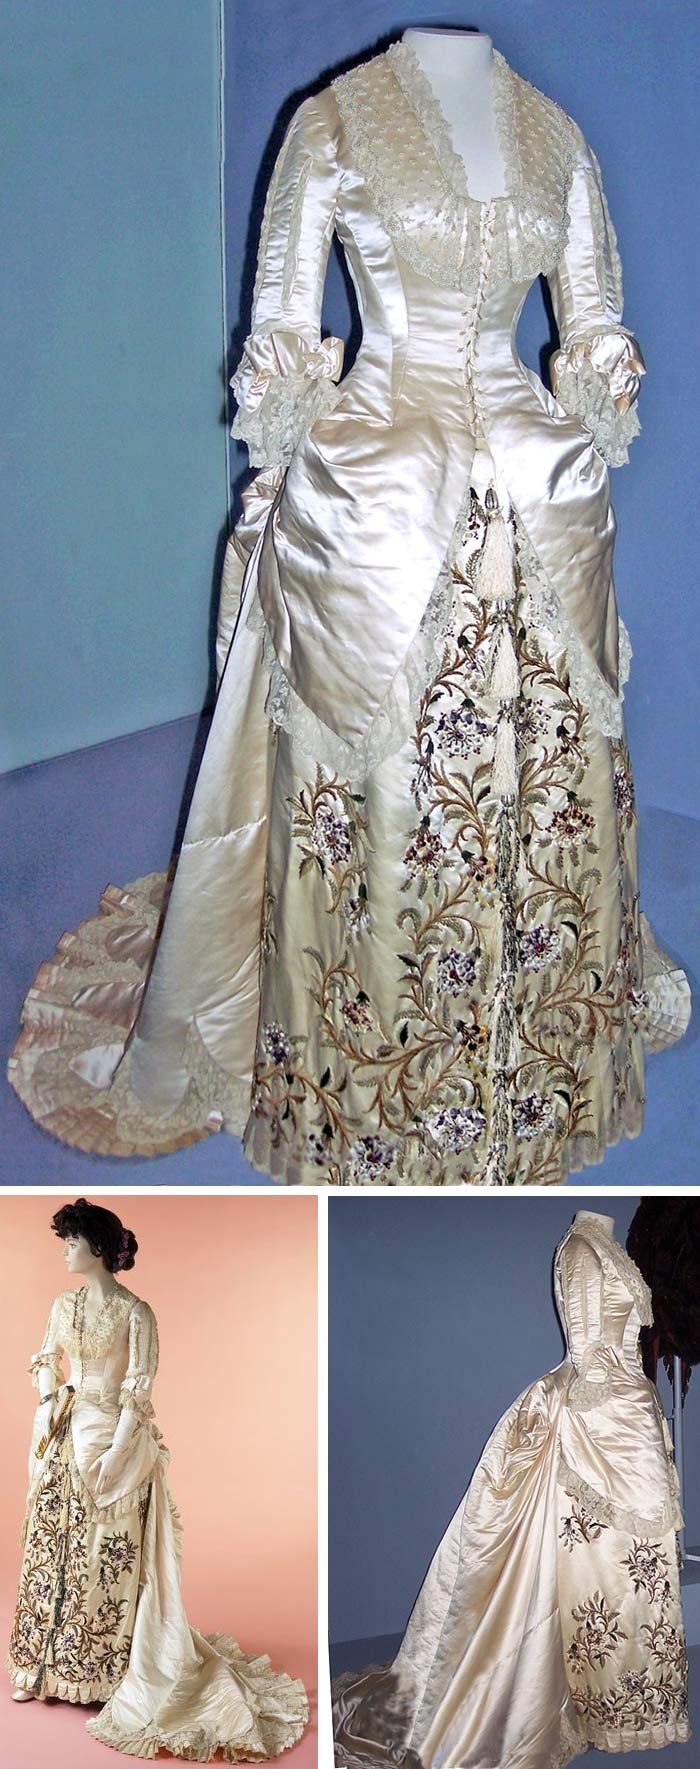 Worth evening dress, circa 1881. Pale pink silk satin, Princess-lined, with pearl embroidery and machine-made lace. Boned bodice is seamed and gored for a molded fit. It extends into drapes at the hips and merges with train, which falls in inverted pleats from bodice seams. Skirt hooped at inside back, with tapes for adjustment, to create bustle effect. Elbow-length sleeves slightly puffed; slits filled with cream machine-made lace. Via Victoria & Albert Museum and National Education…